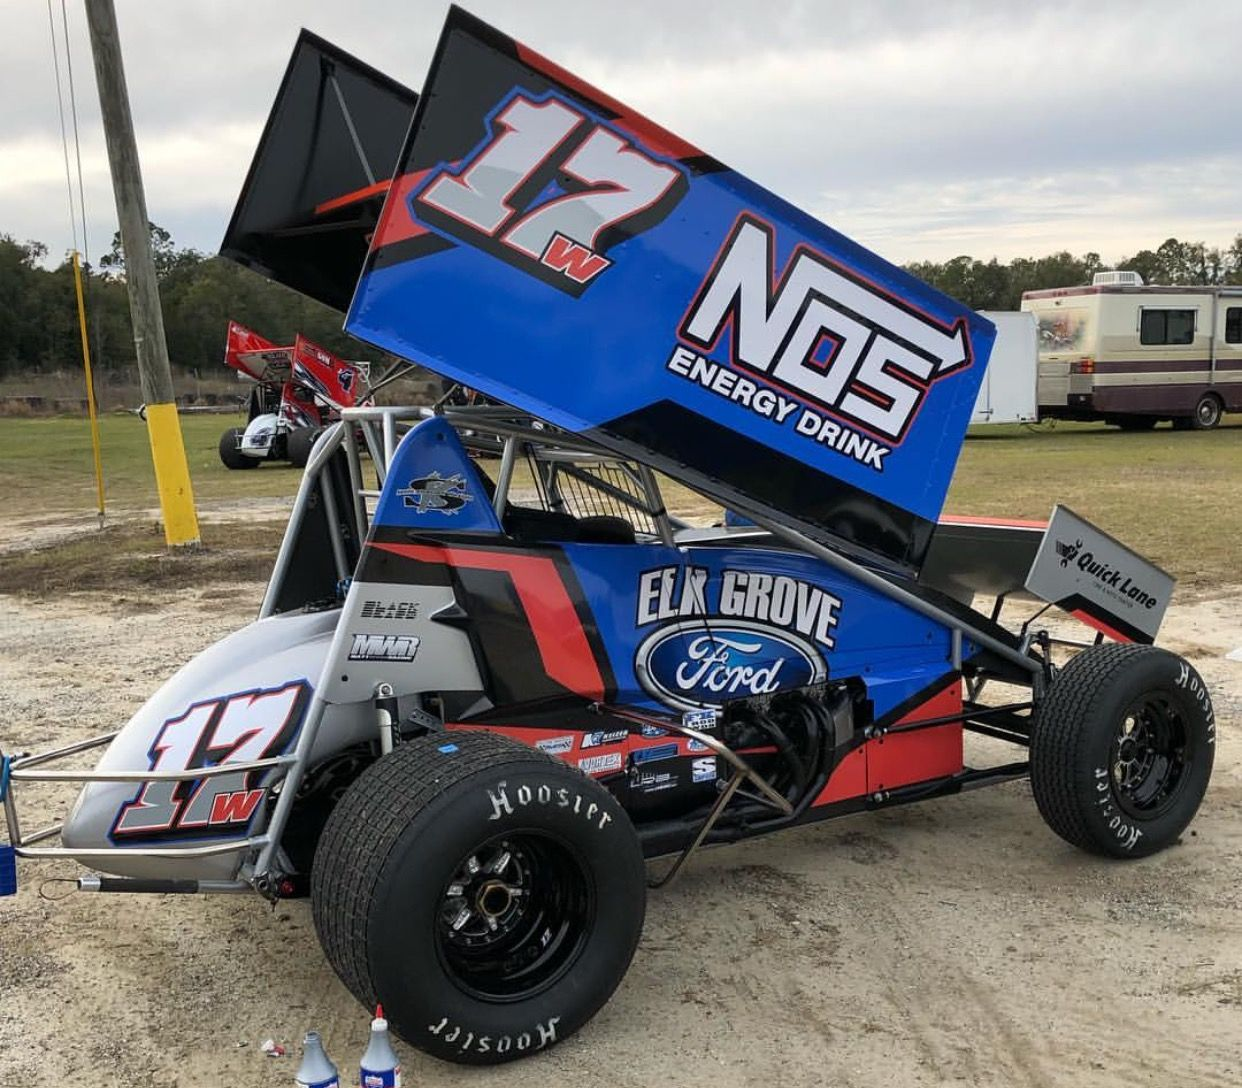 Pin On Sprint Cars / Dirt Track Racing